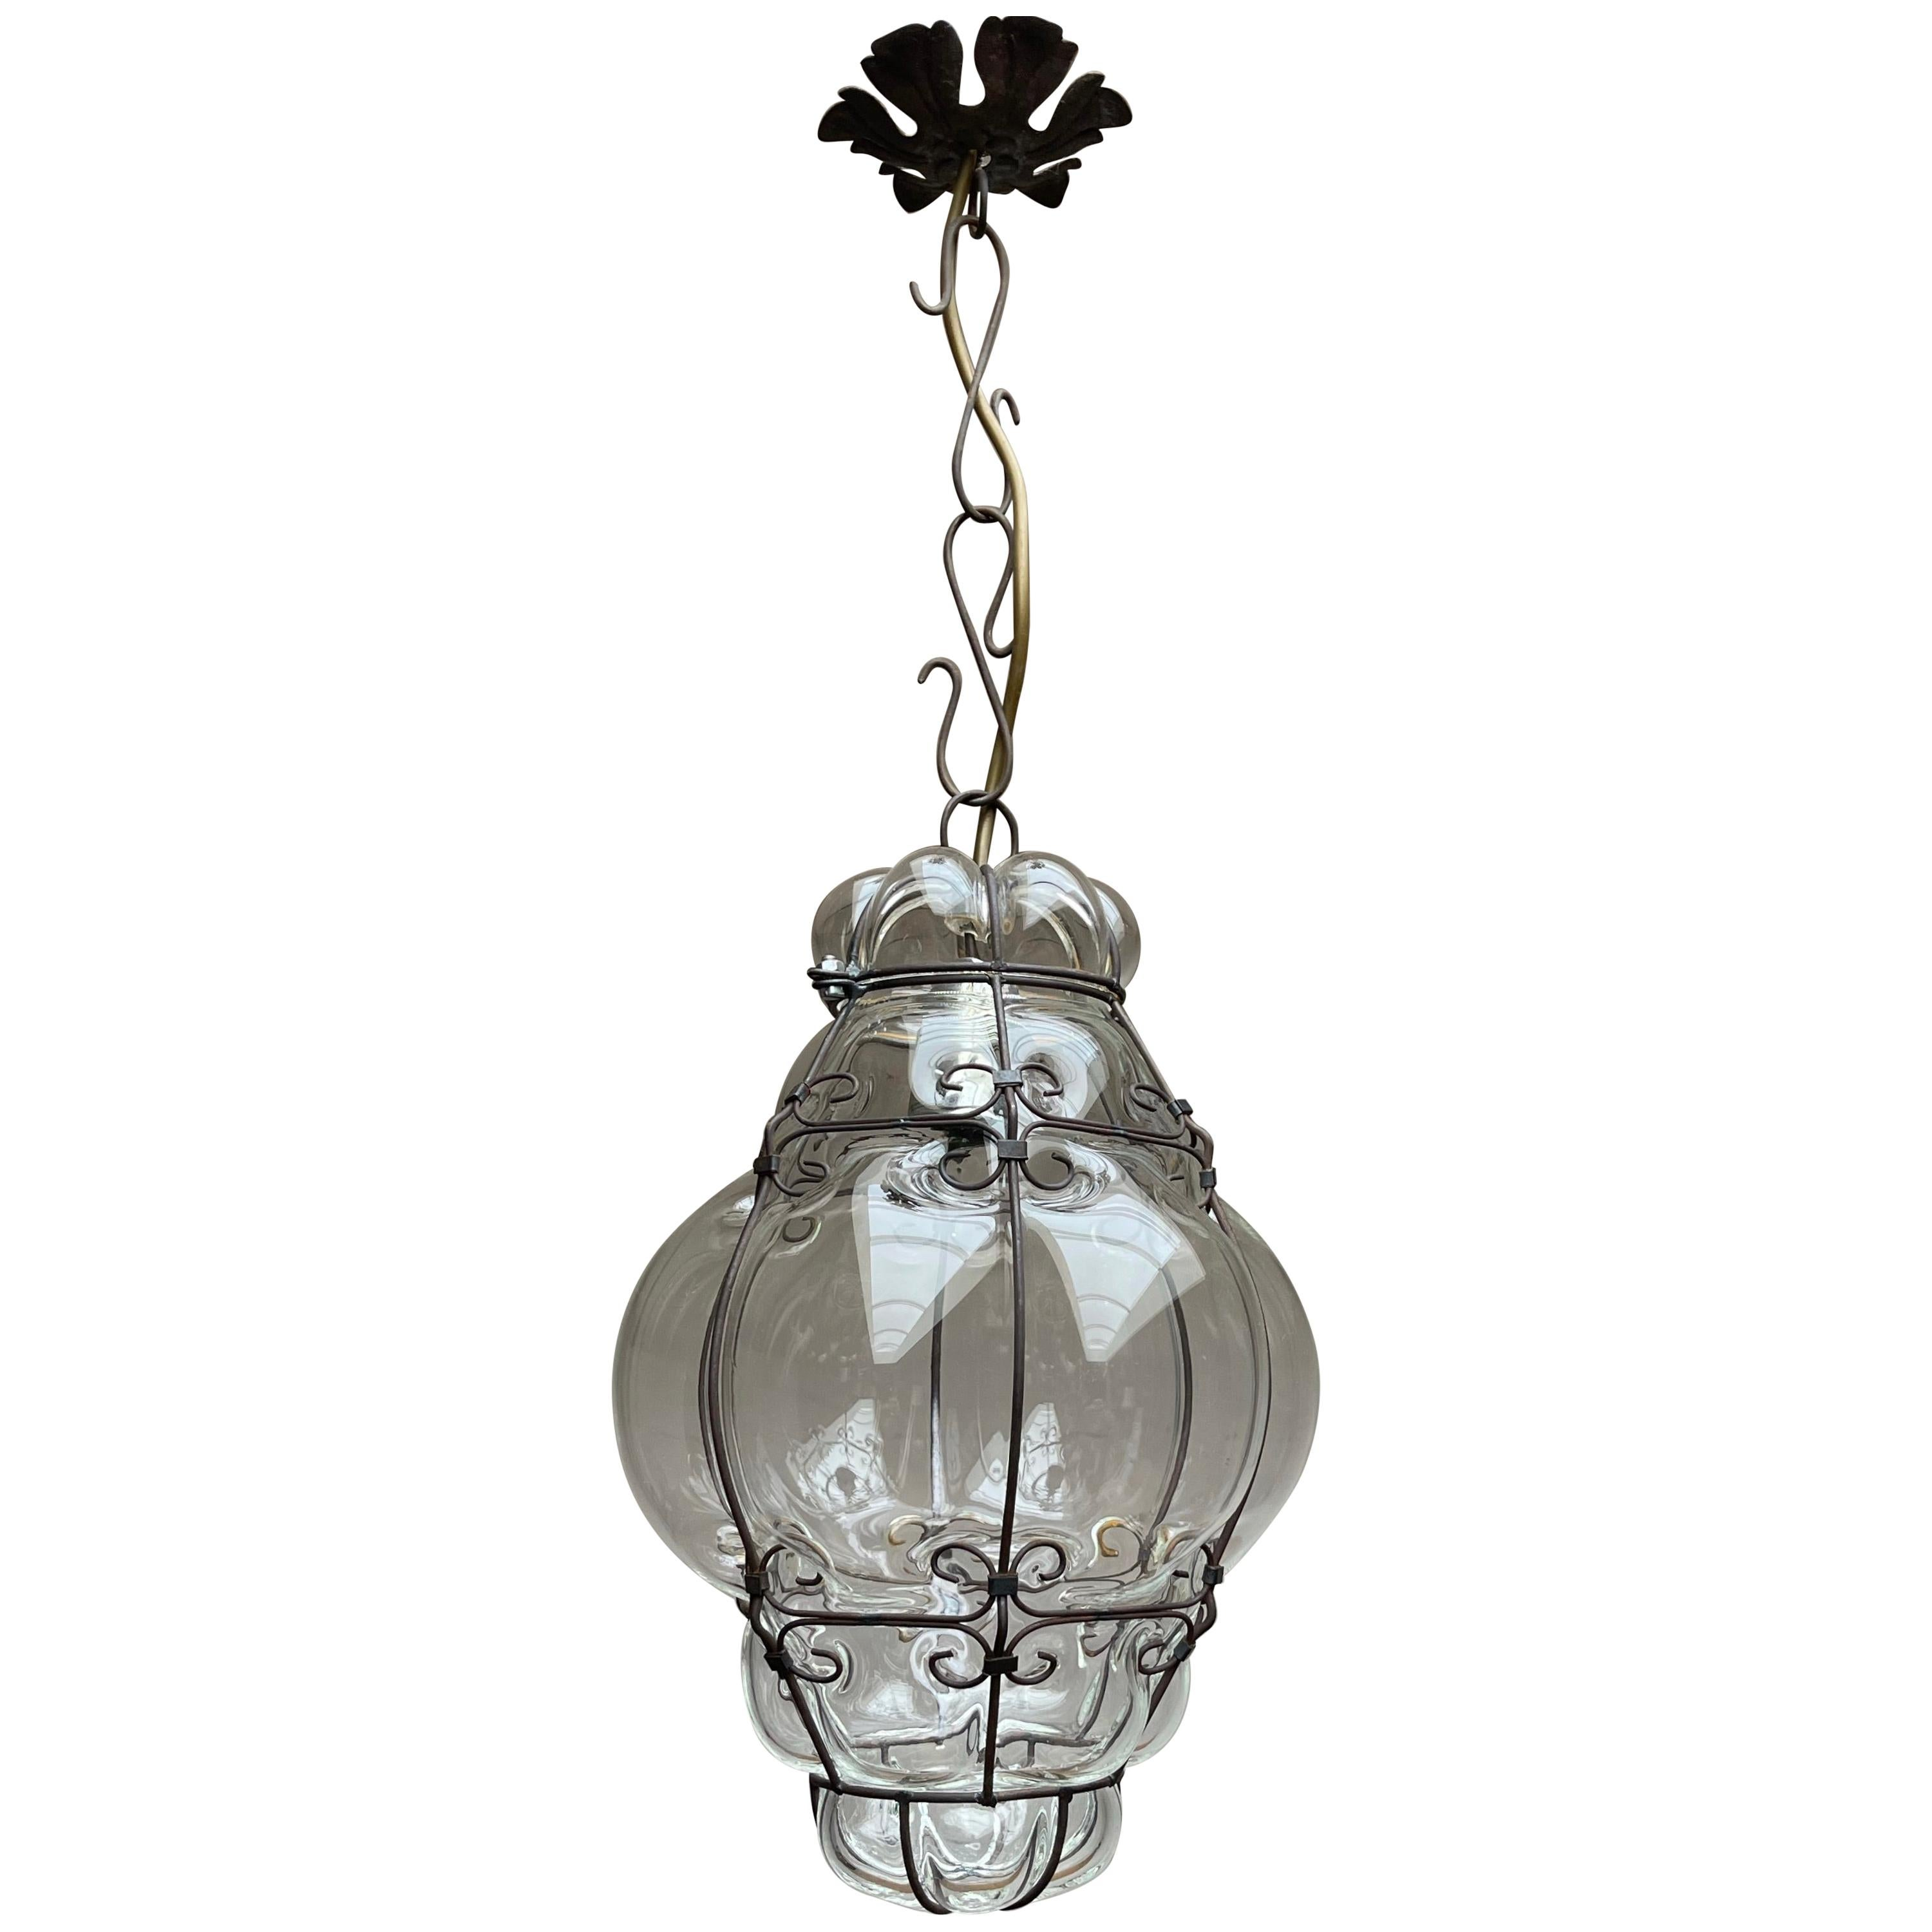 Small Venetian Murano Pendant Light with Mouthblown Clear Glass in Metal Frame